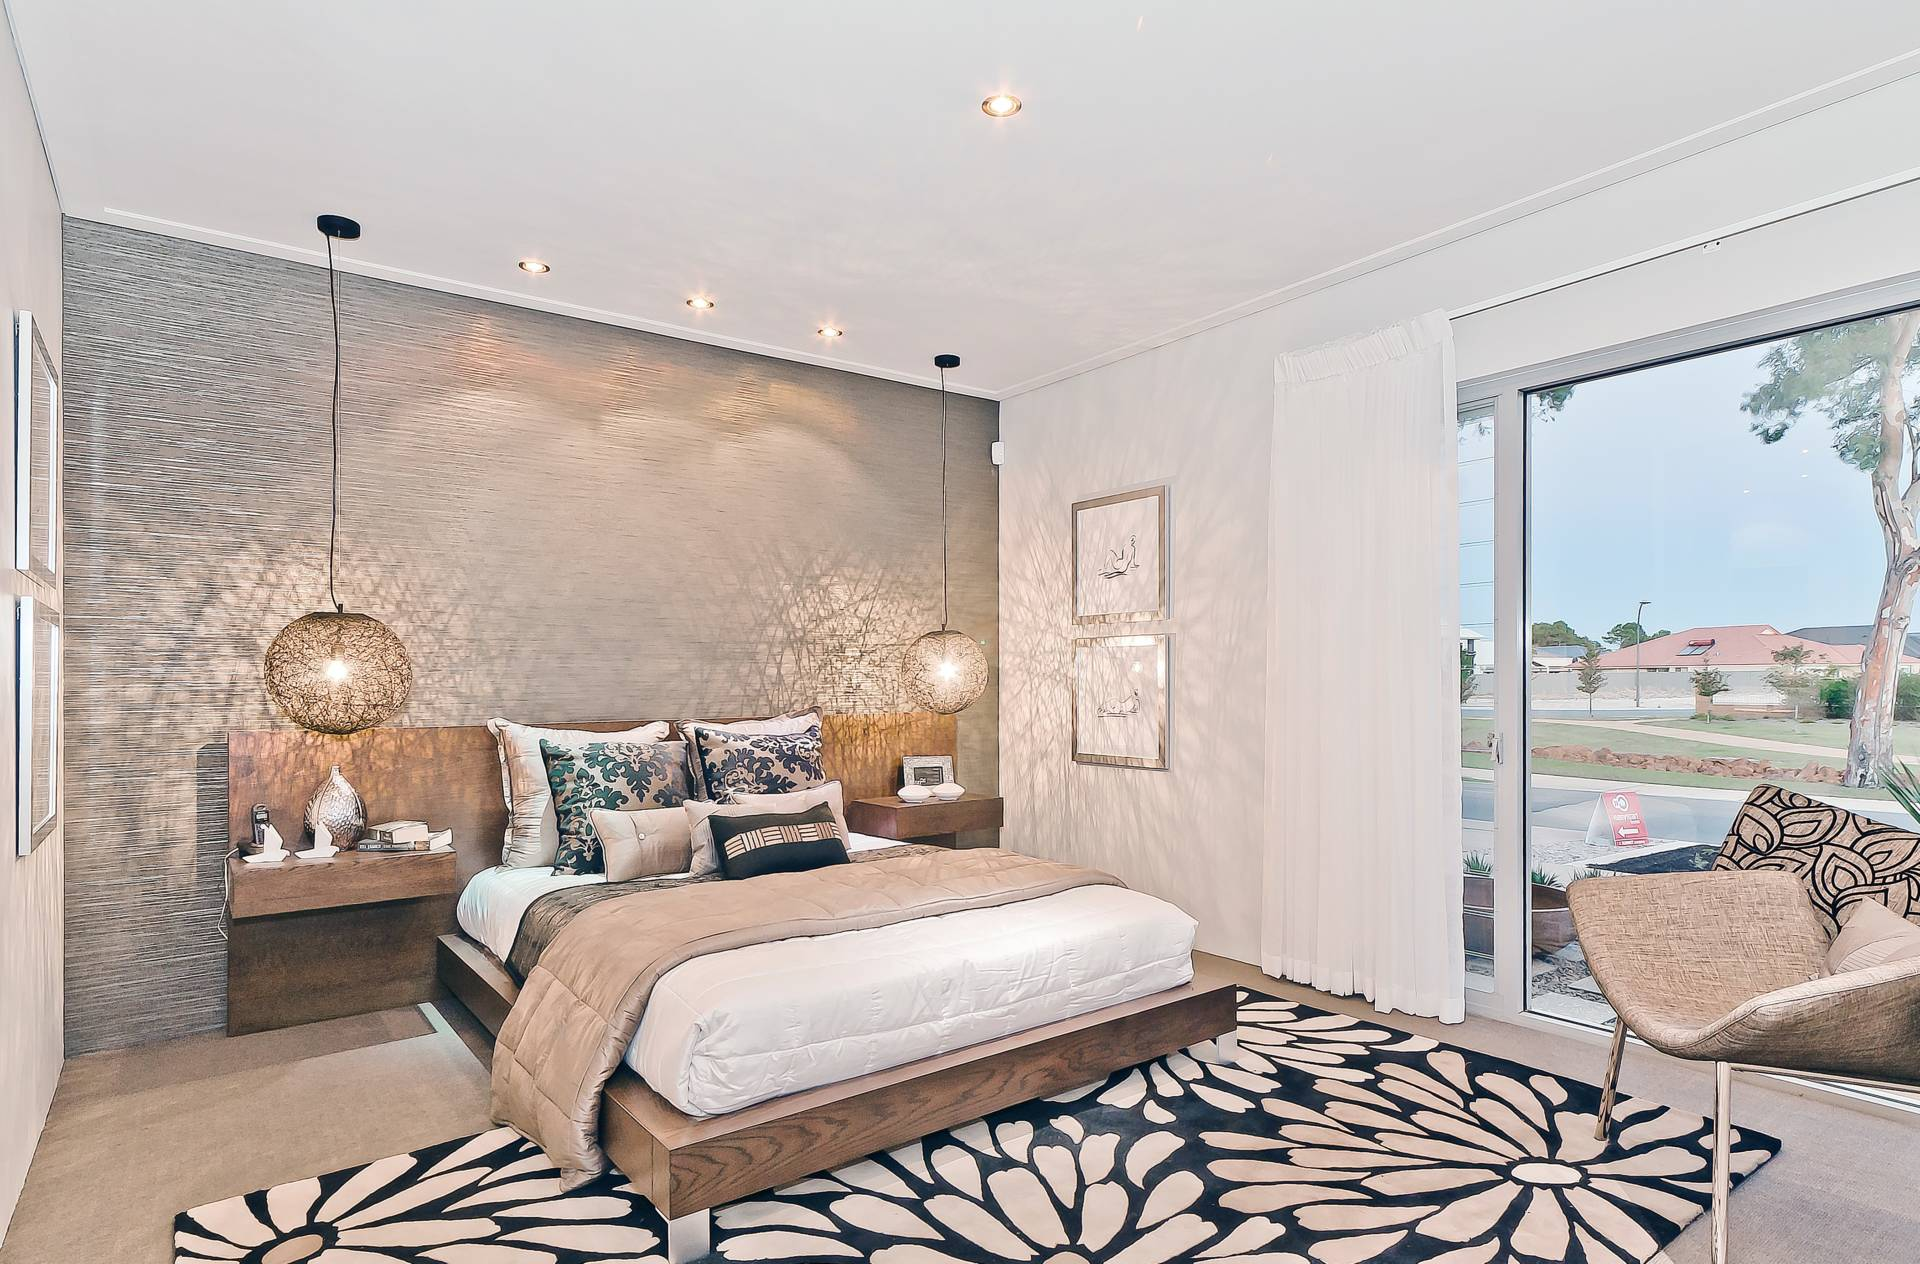 https://www.wowhomes.com.au/wp-content/uploads/2019/05/030-Open2view-ID172043-991-Broadway-Boulevard__cropped.jpg